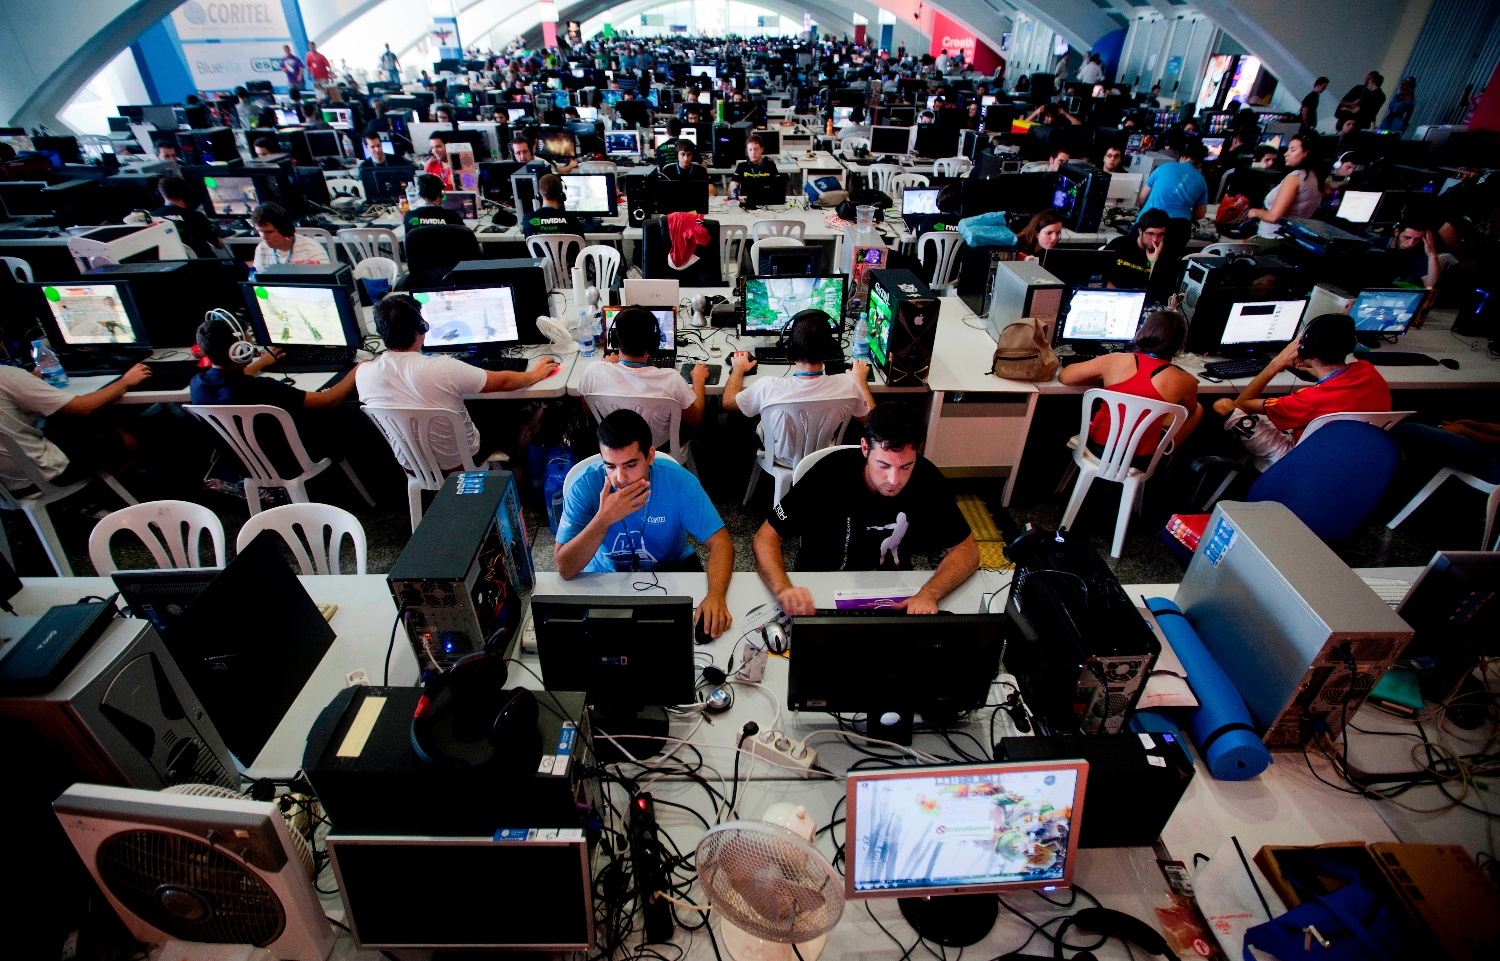 People attend the annual 'Campus Party'  Internet users gathering in Valencia, Spain, Tuesday, July 12, 2011.